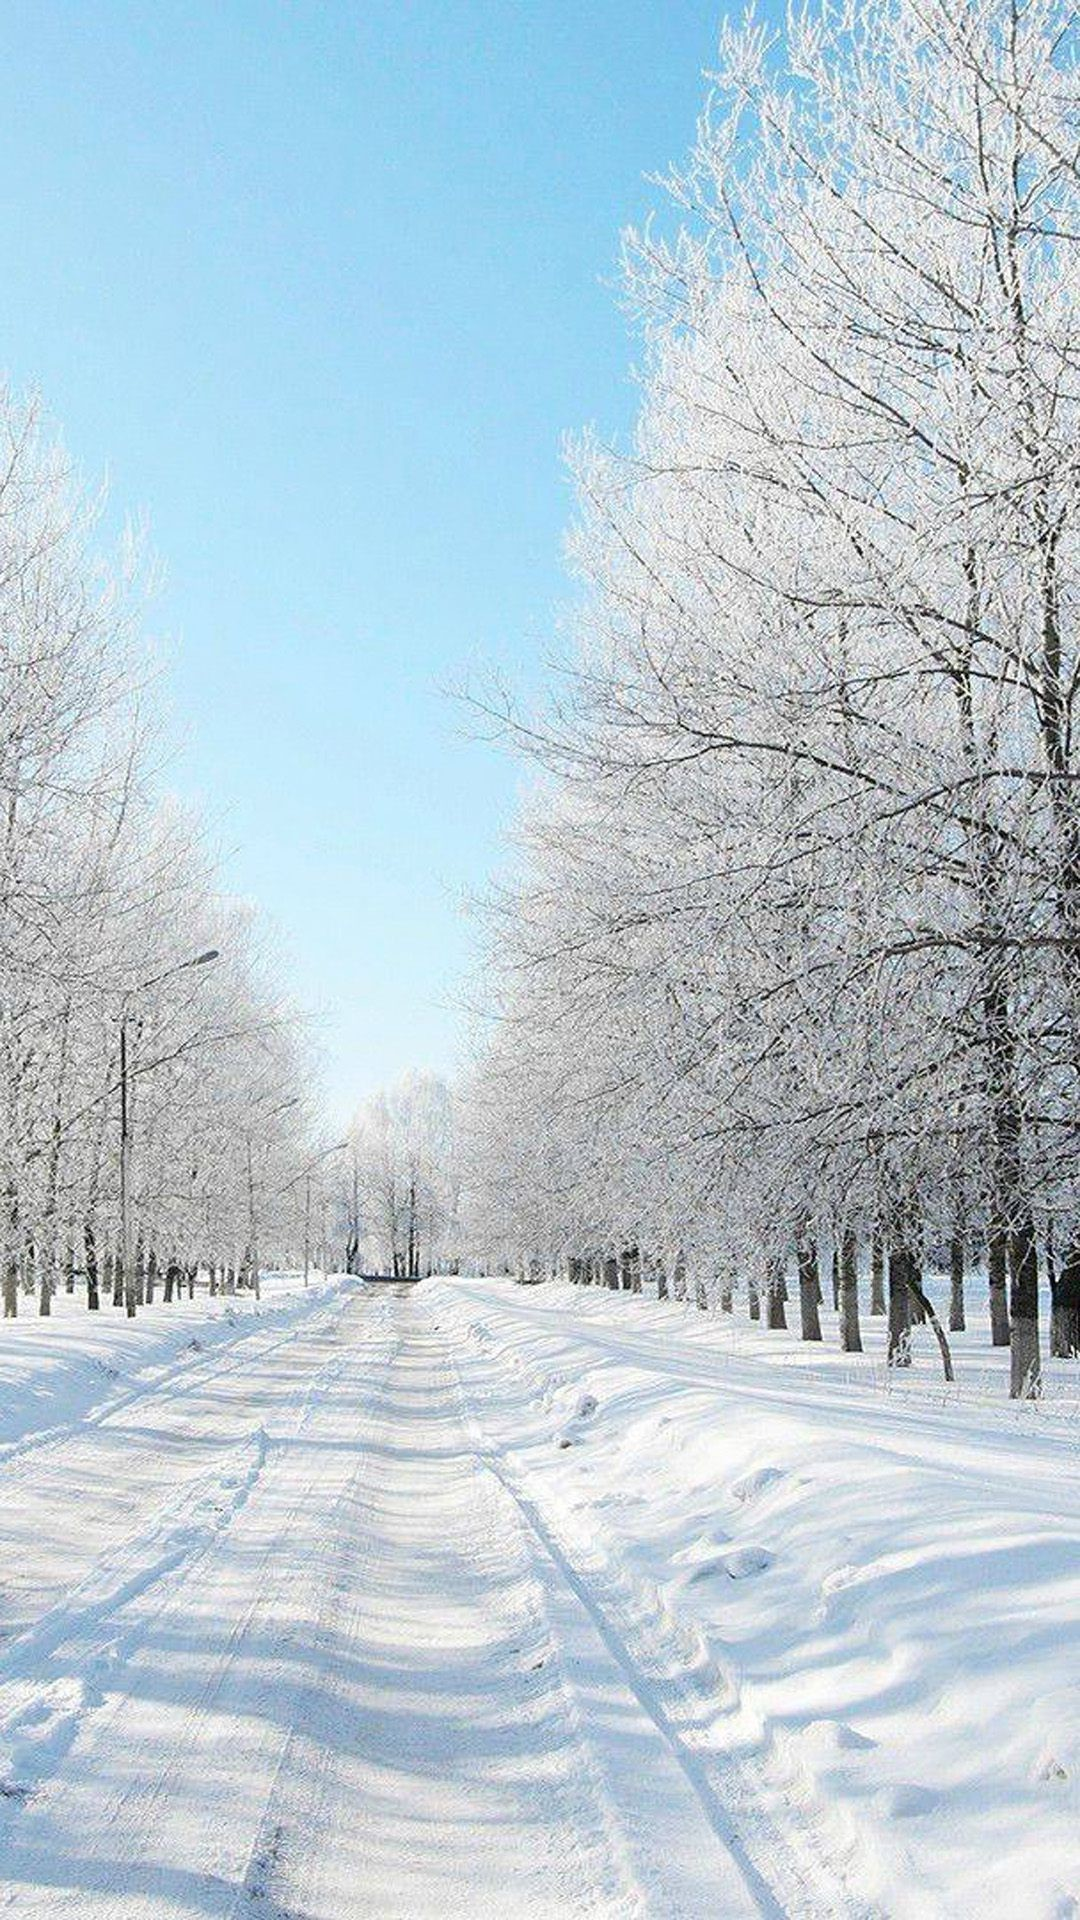 Winter Scenic Wallpapers on